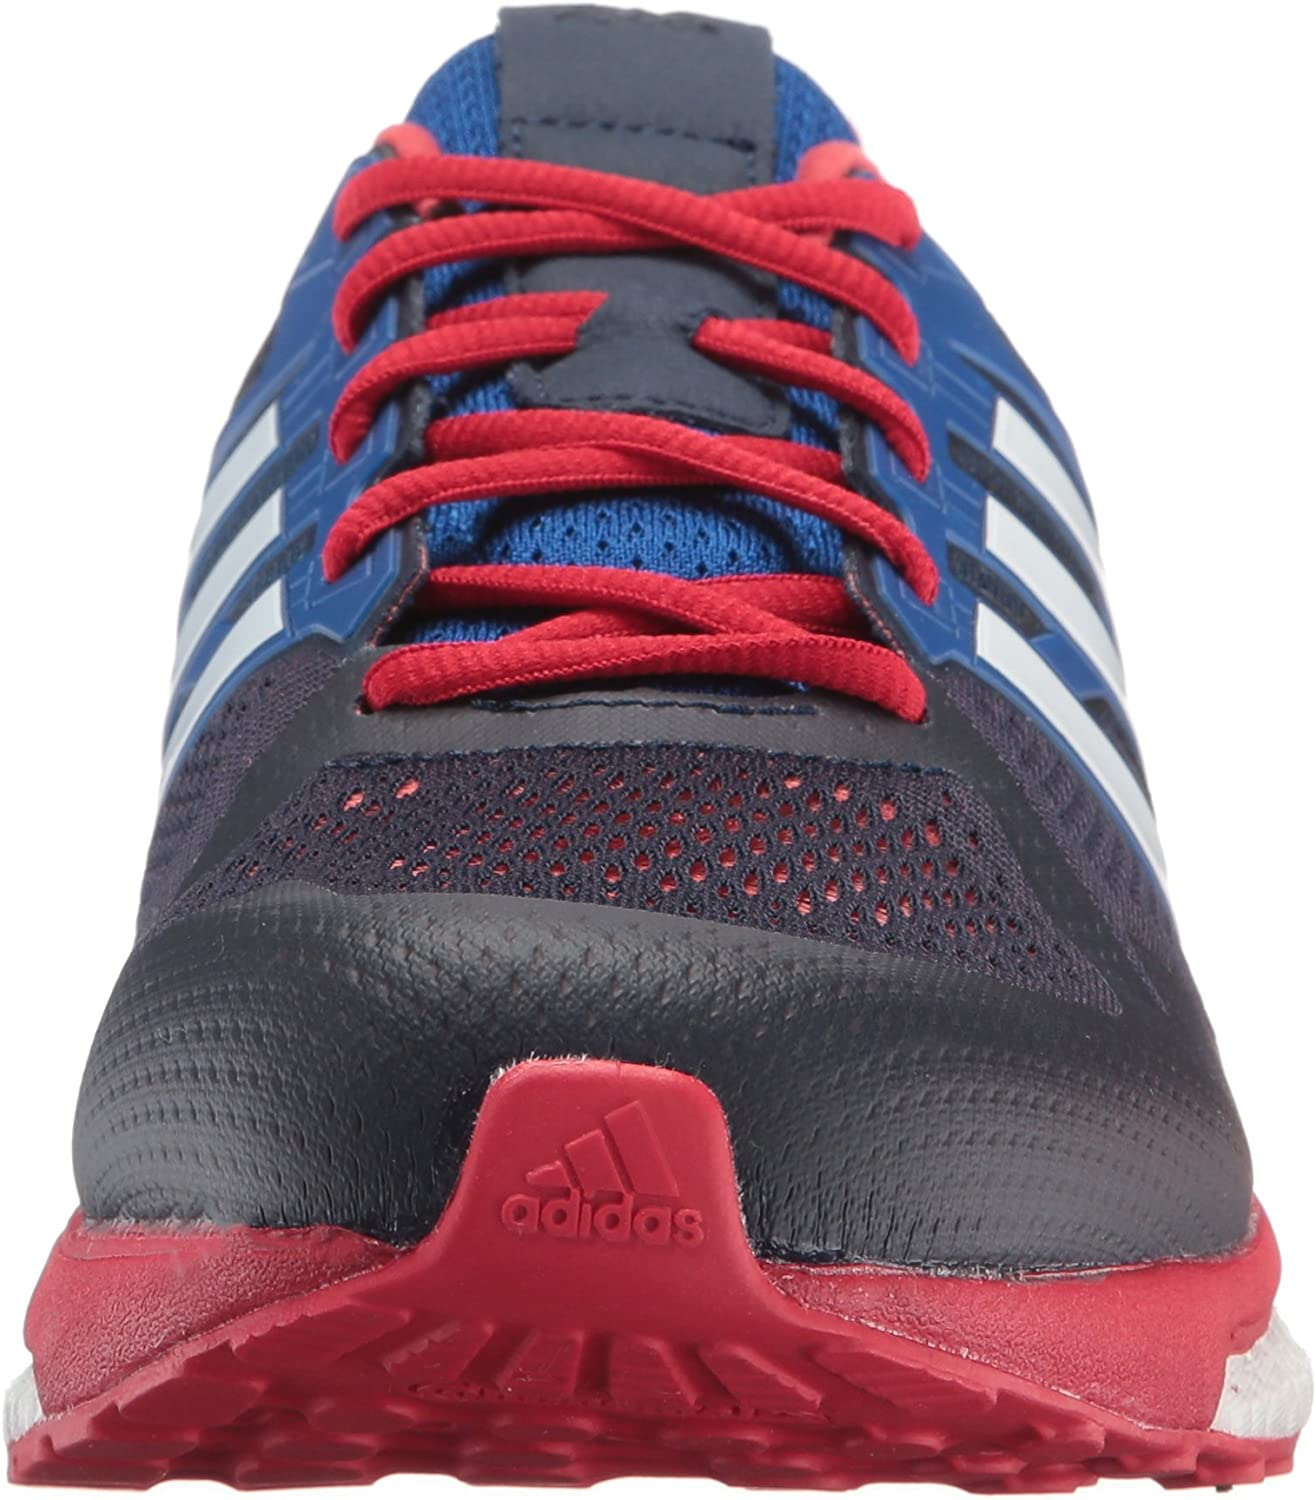 adidas Originals Men's Supernova St m Running Shoe Collegiate Navy/White/Scarlet